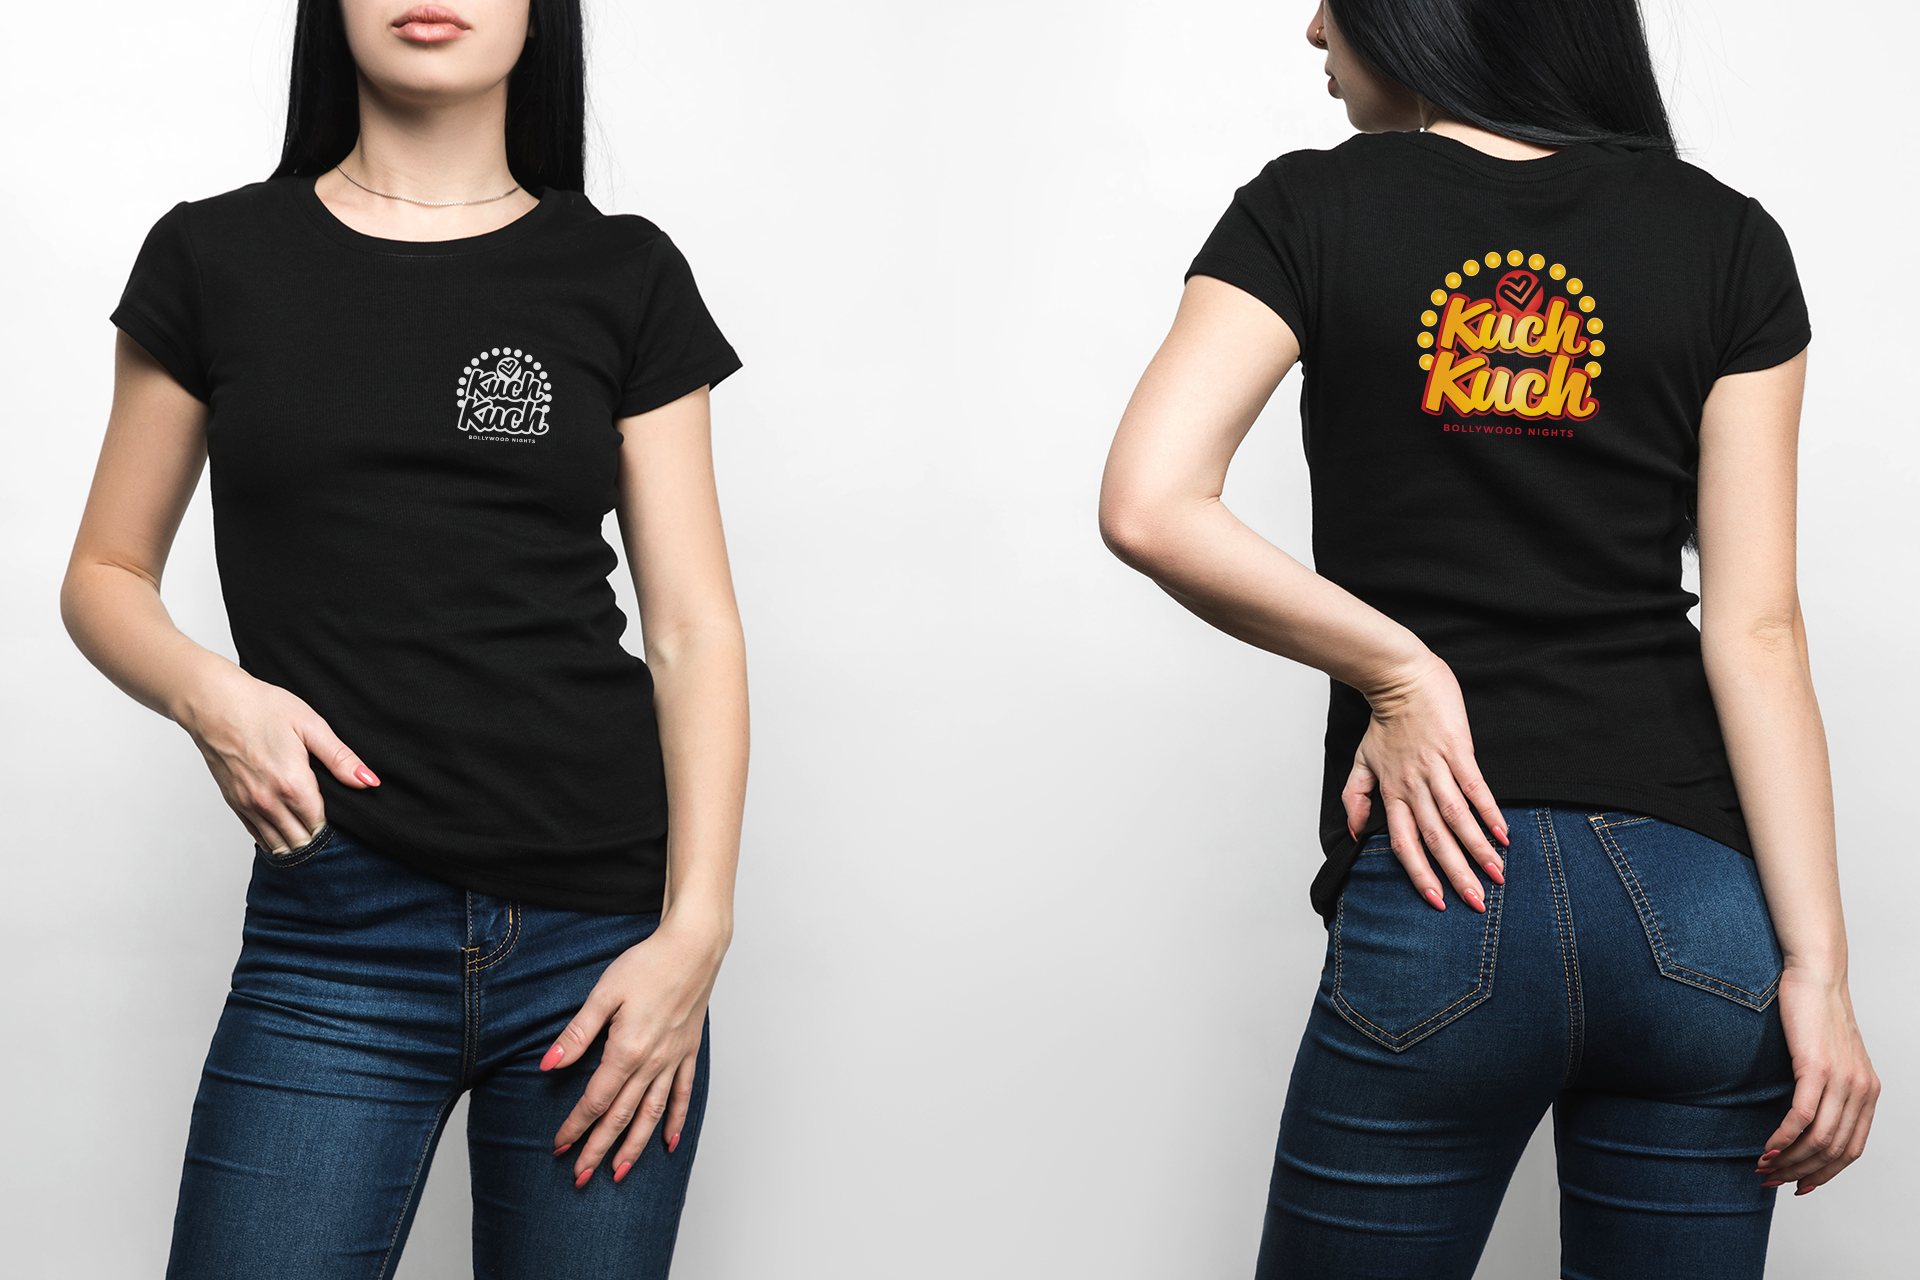 Image of front and back view black t-shirt, Kuch Kuch brand